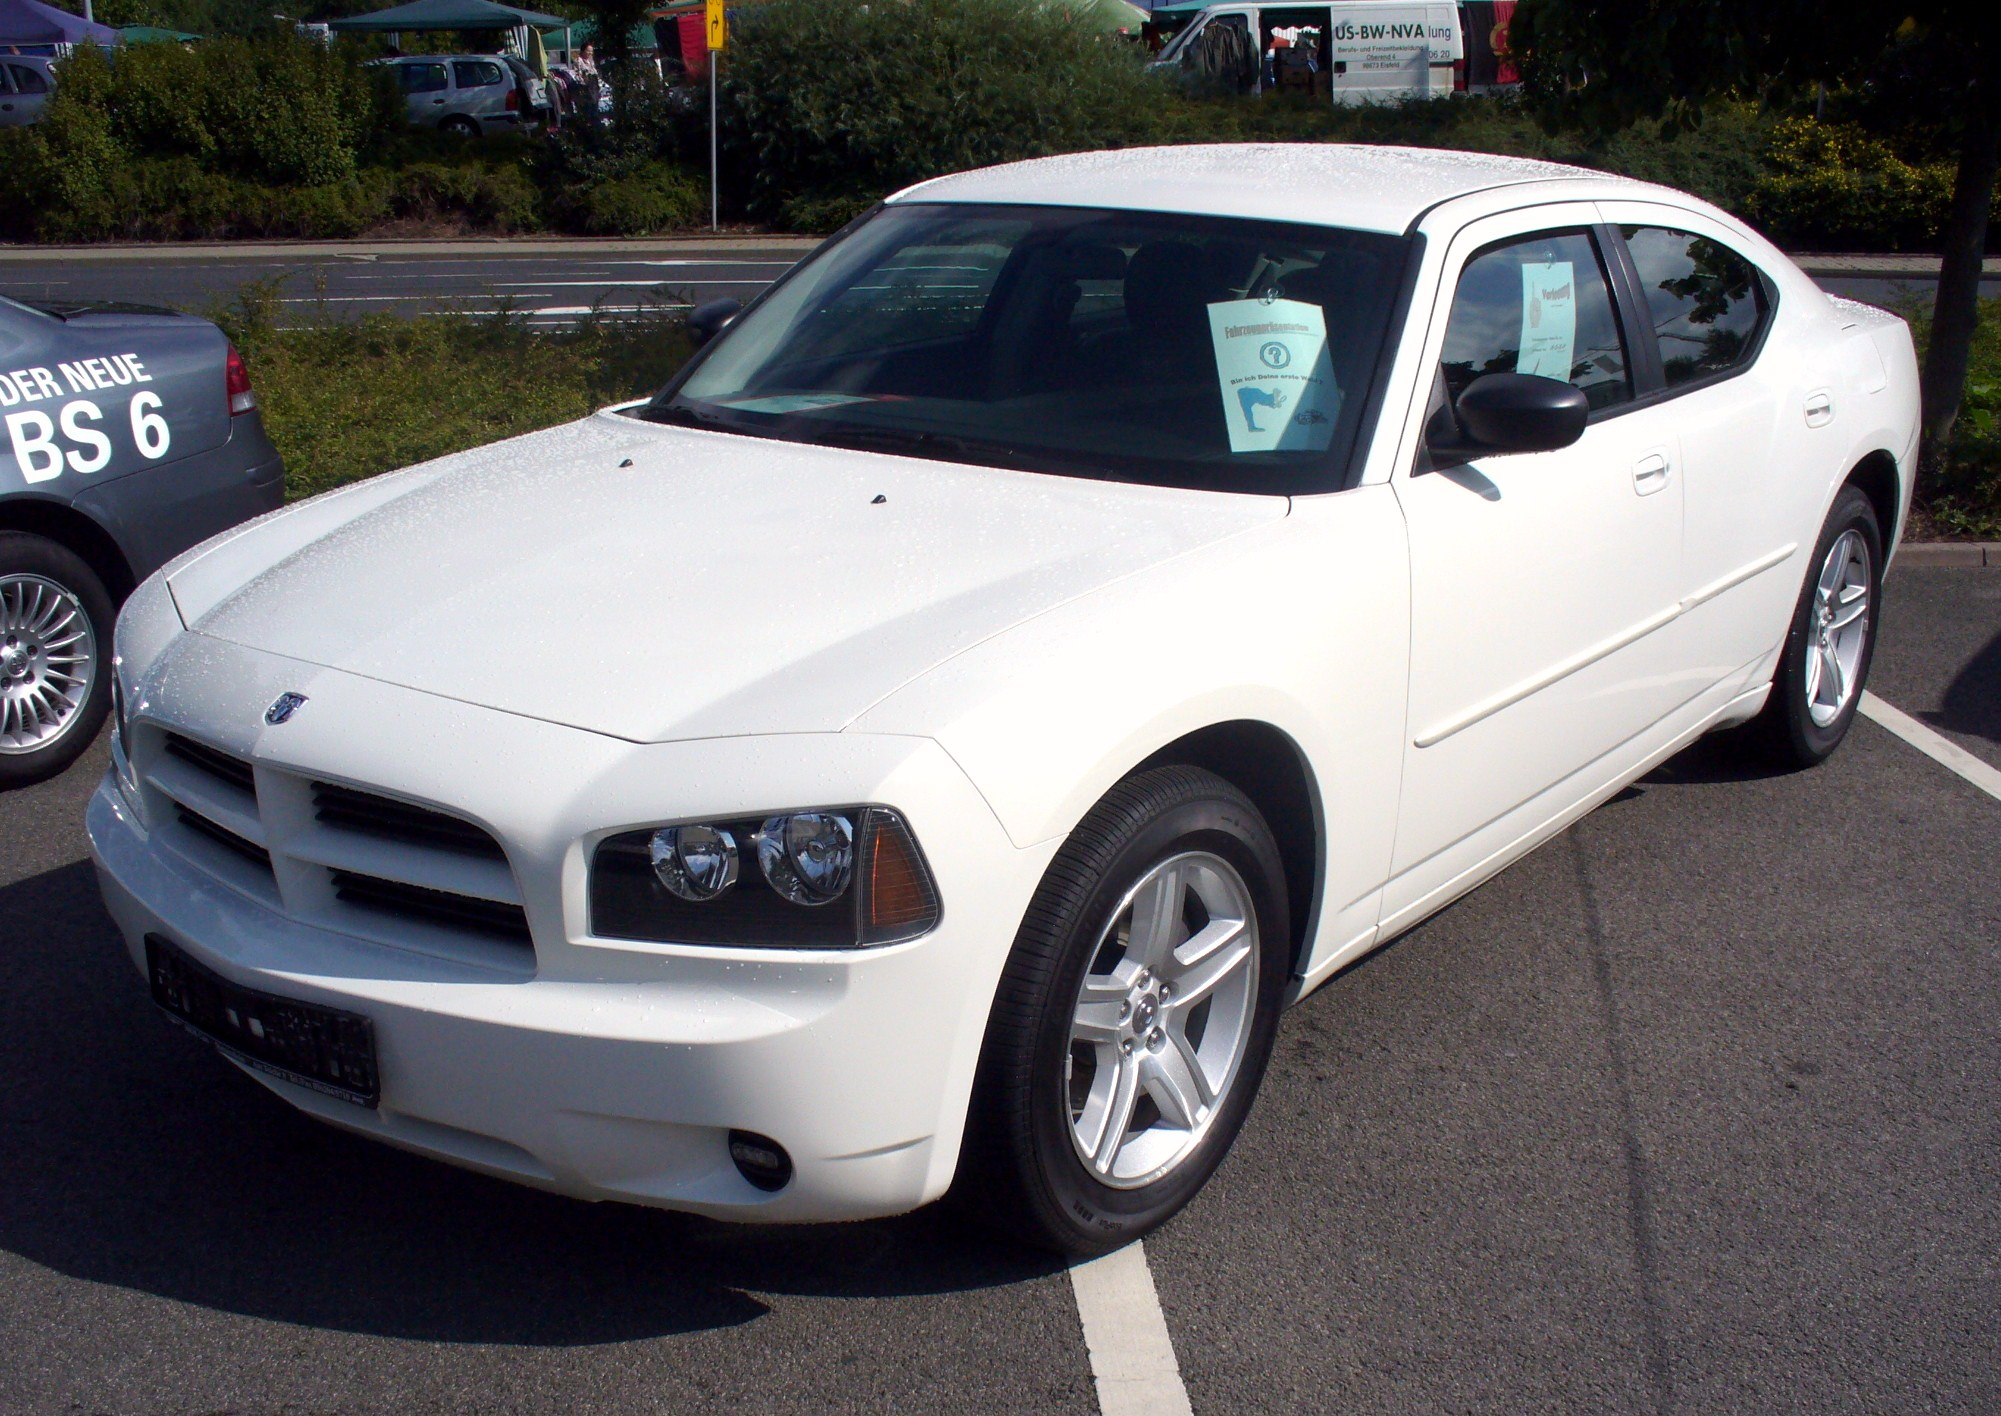 2008 Dodge Charger #7